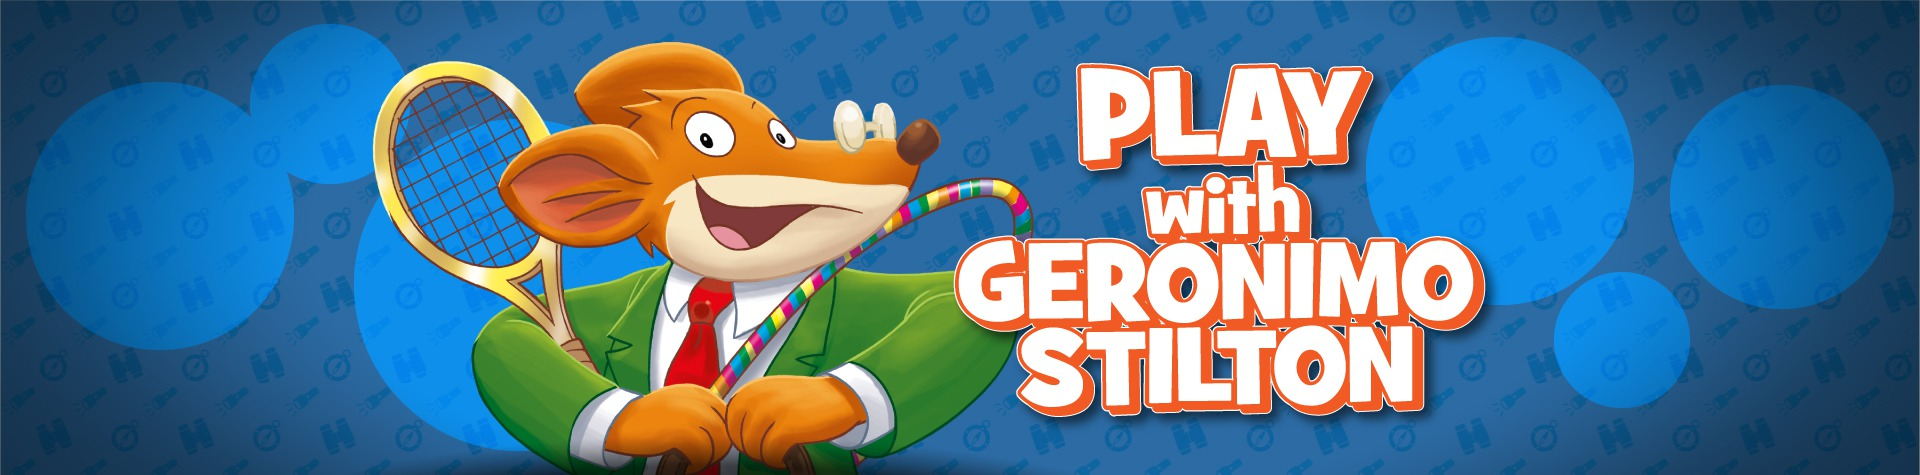 Play with Geronimo Stilton